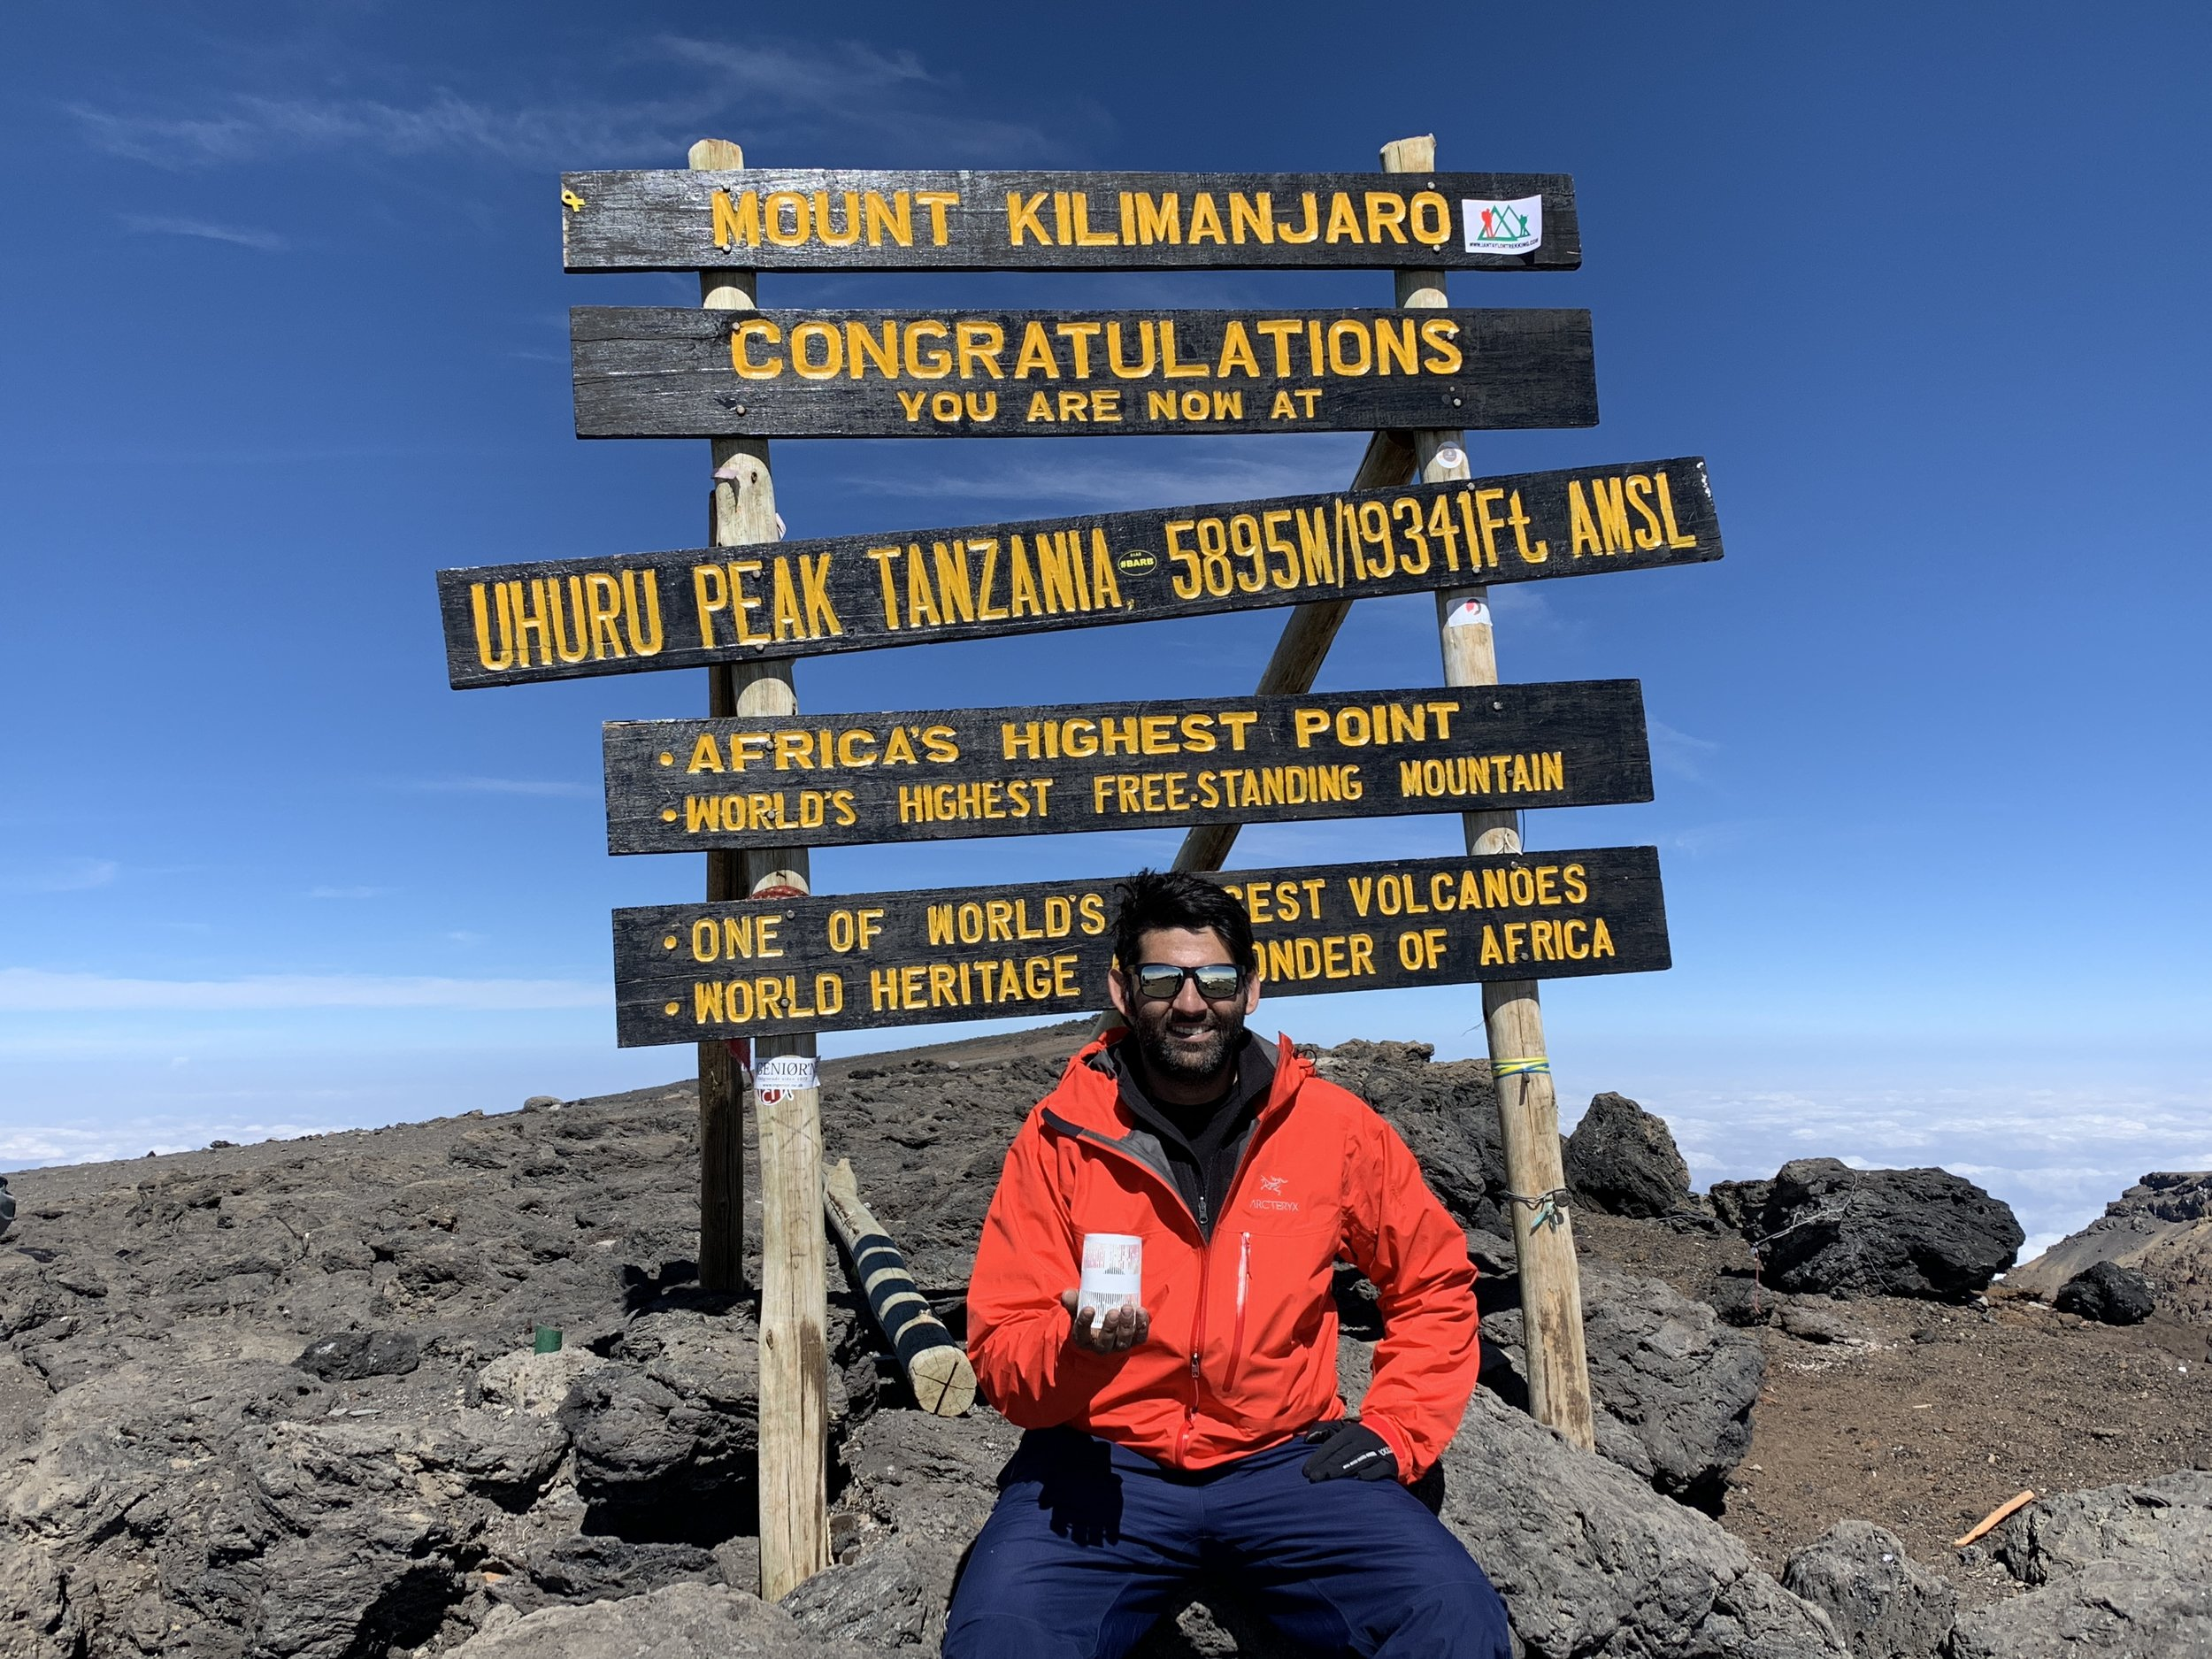 Our co-founder Sid Butalia atop Africa's highest point and mountain.